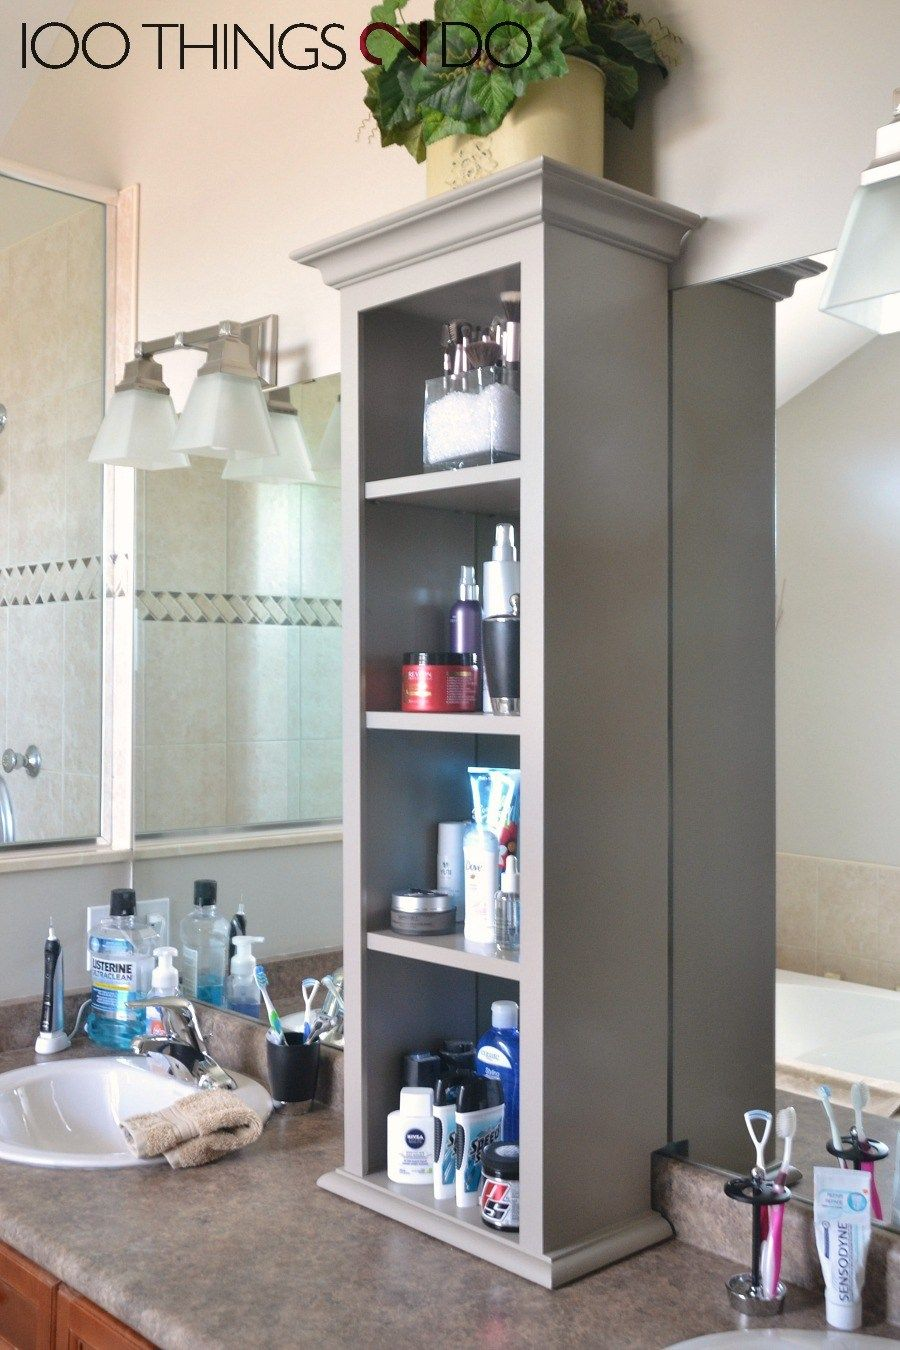 Bathroom Storage Tower | Bathroom storage, Bathroom cabinets and ...